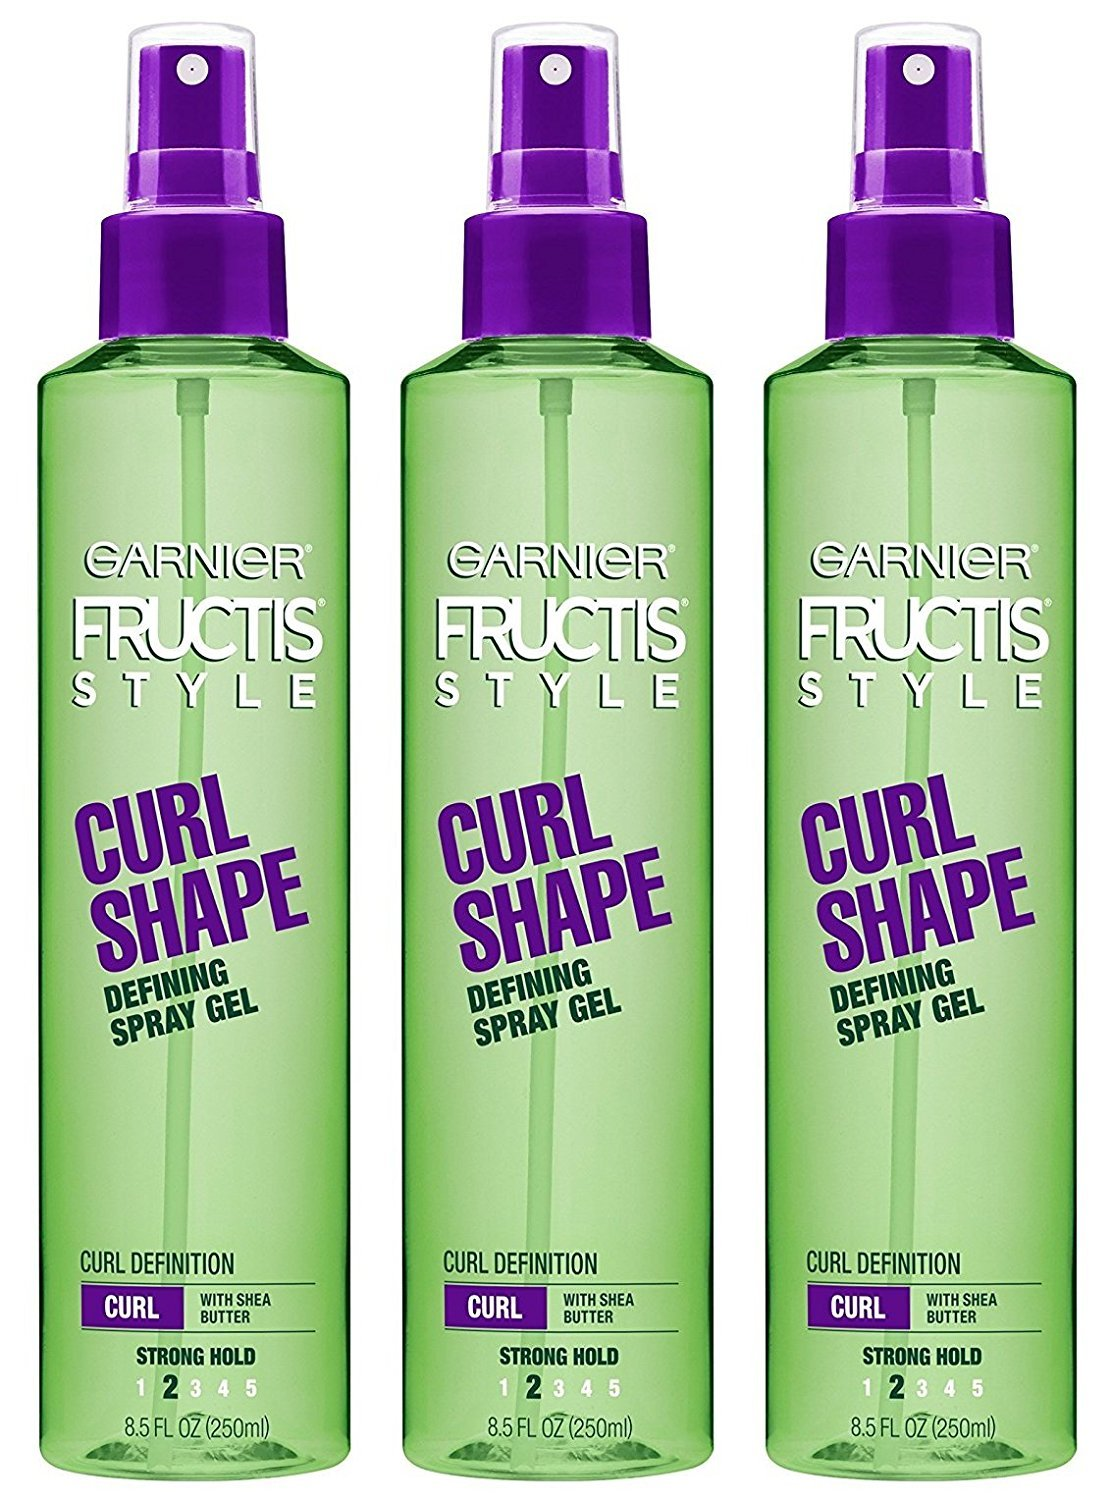 Garnier Fructis Style Curl Shaping Spray Gel, 8.5 Fluid Ounce (Pack of 3)